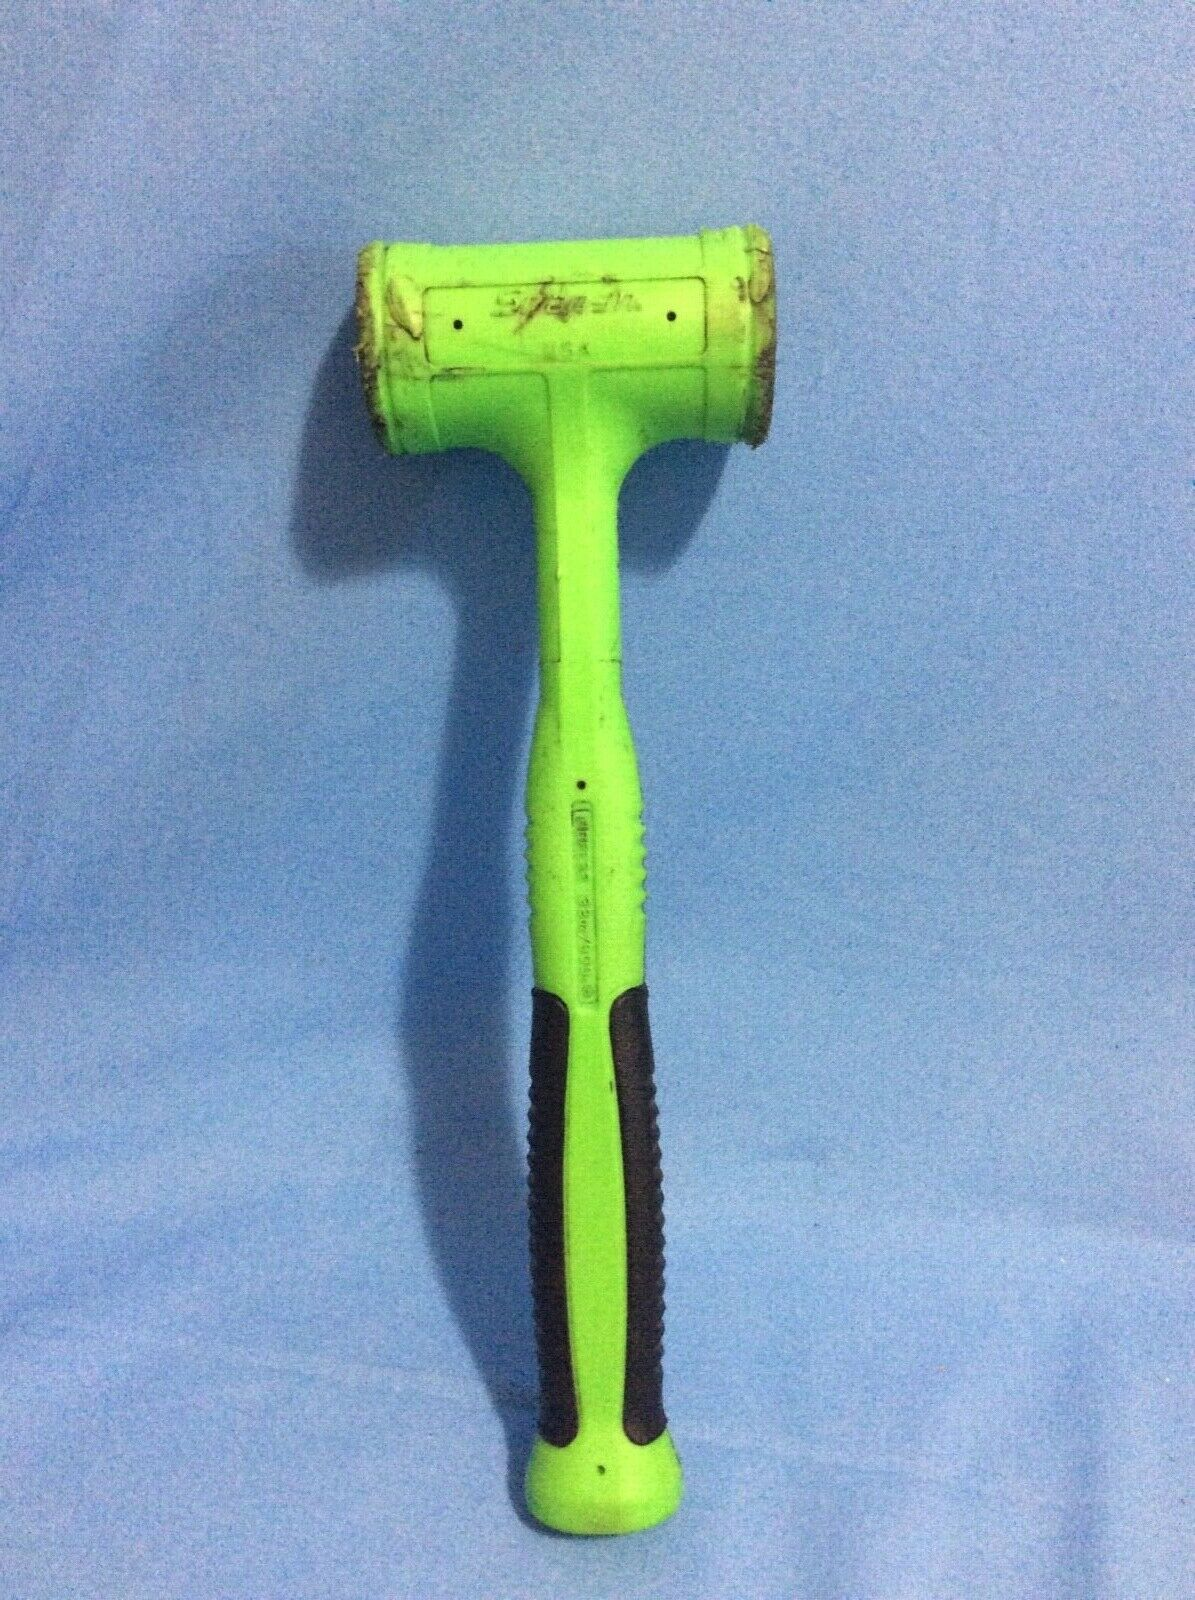 Snap On HBFE32 32 oz Dead Blow Soft Grip Handle Hammer New